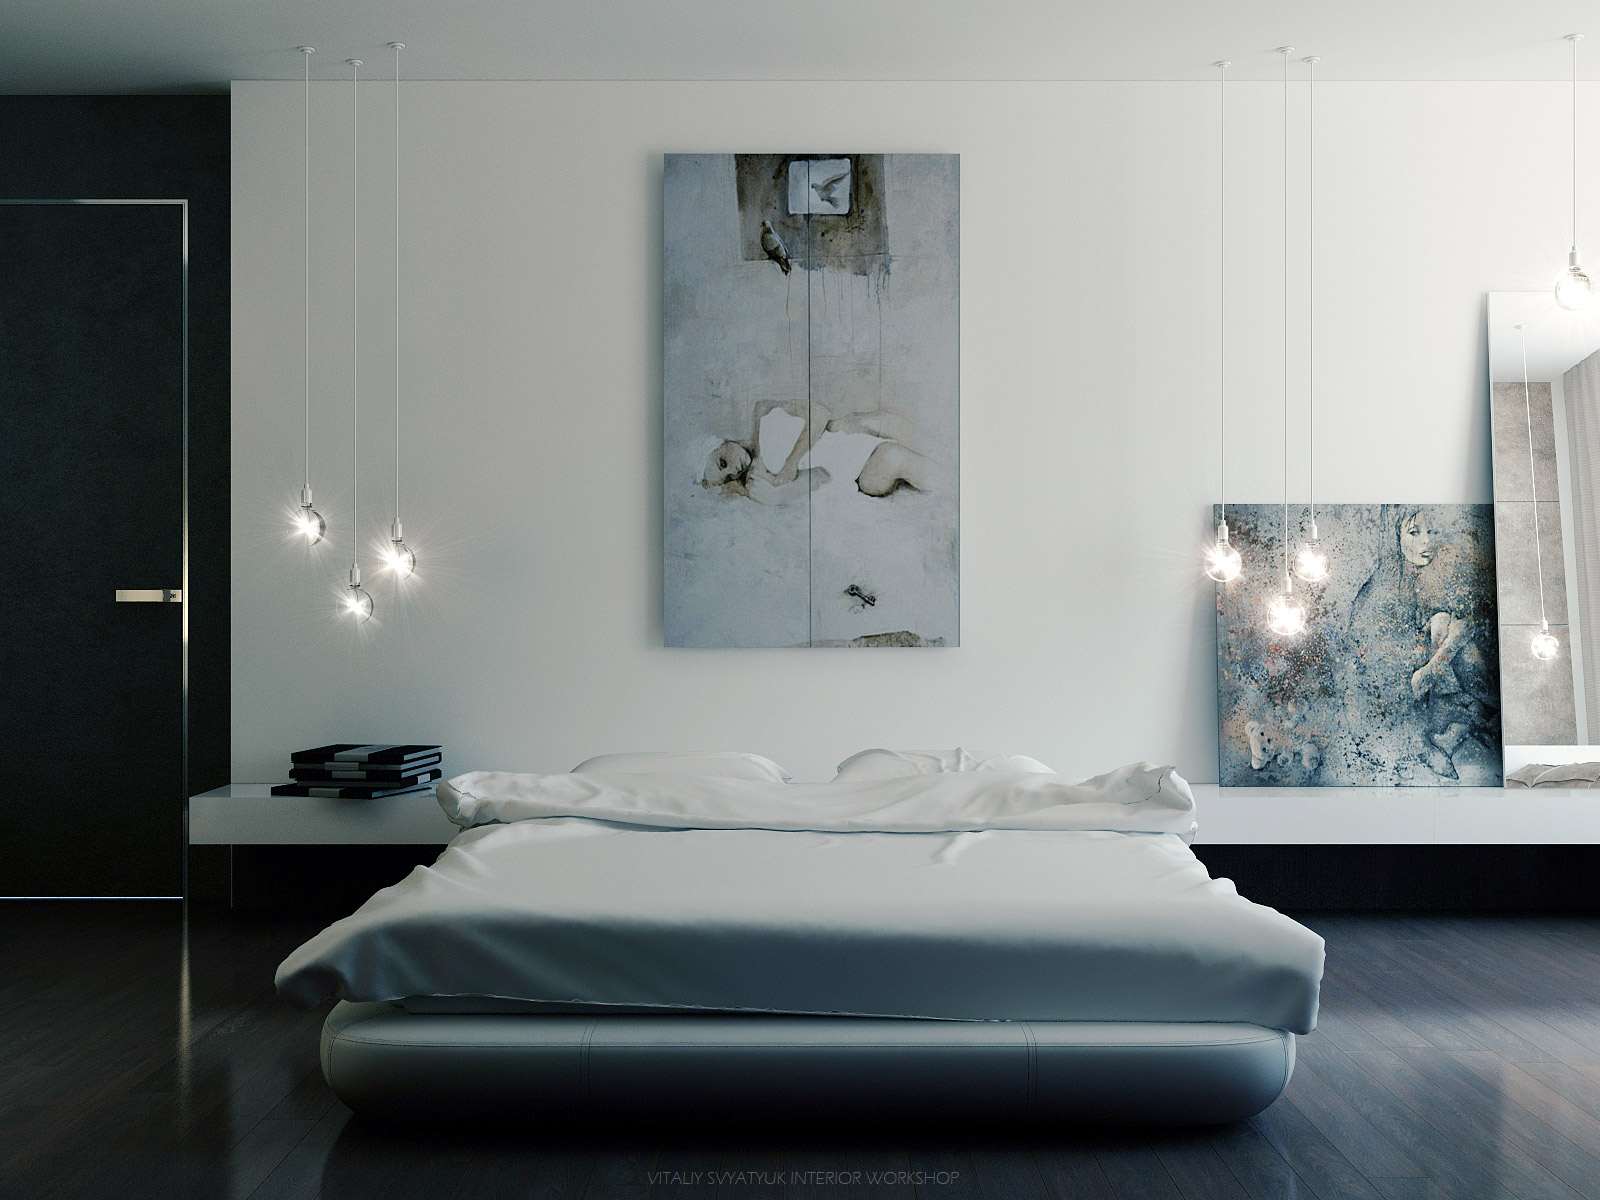 Modern art vitaly svyatyuk cool art cool pallete bedroom Cool bedroom ideas